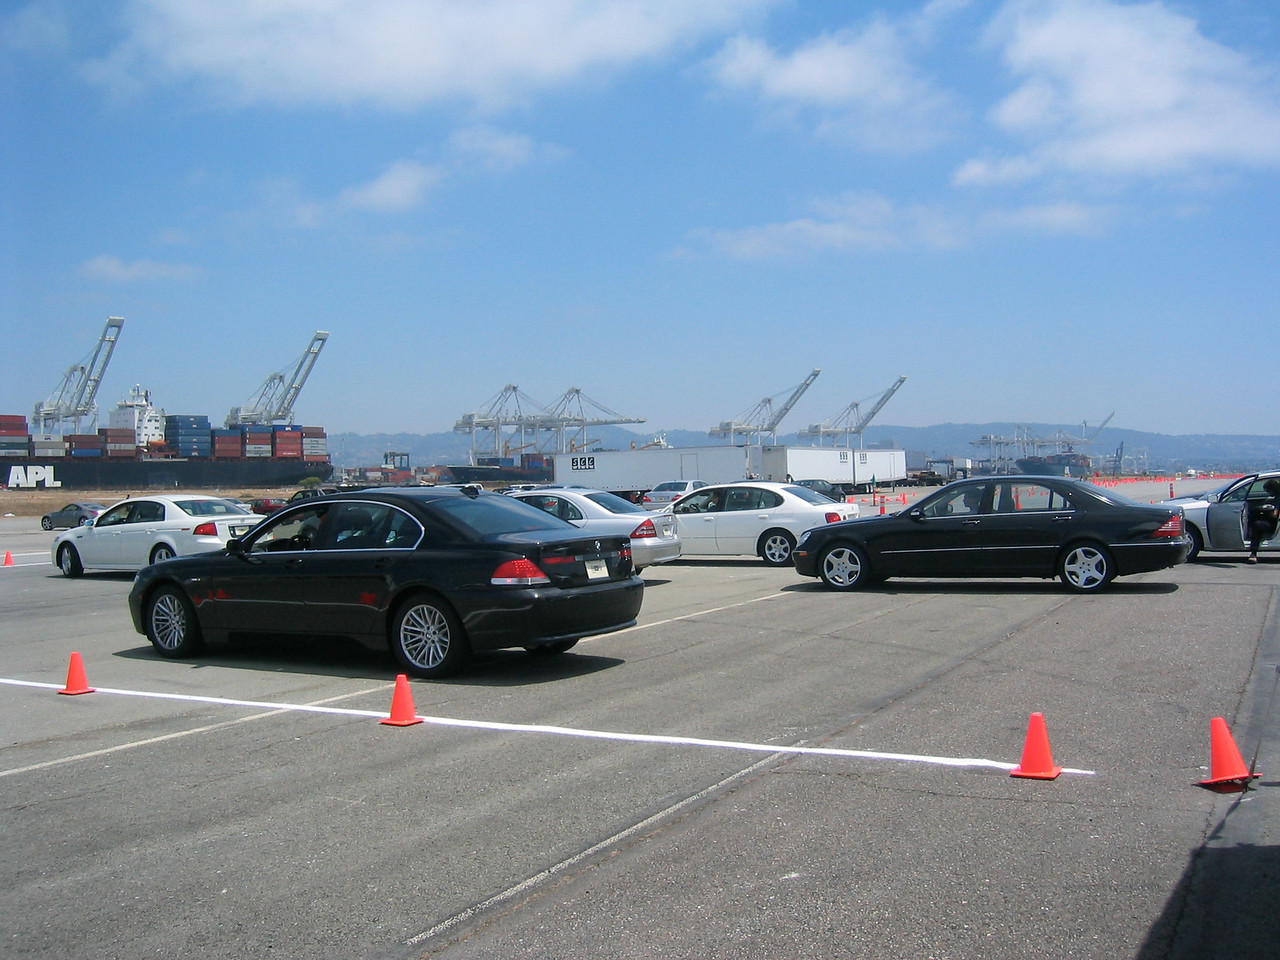 2004 07 10 Saturday - Lexus Taste of Luxury event @ Alameda Point with Marc Rice 2